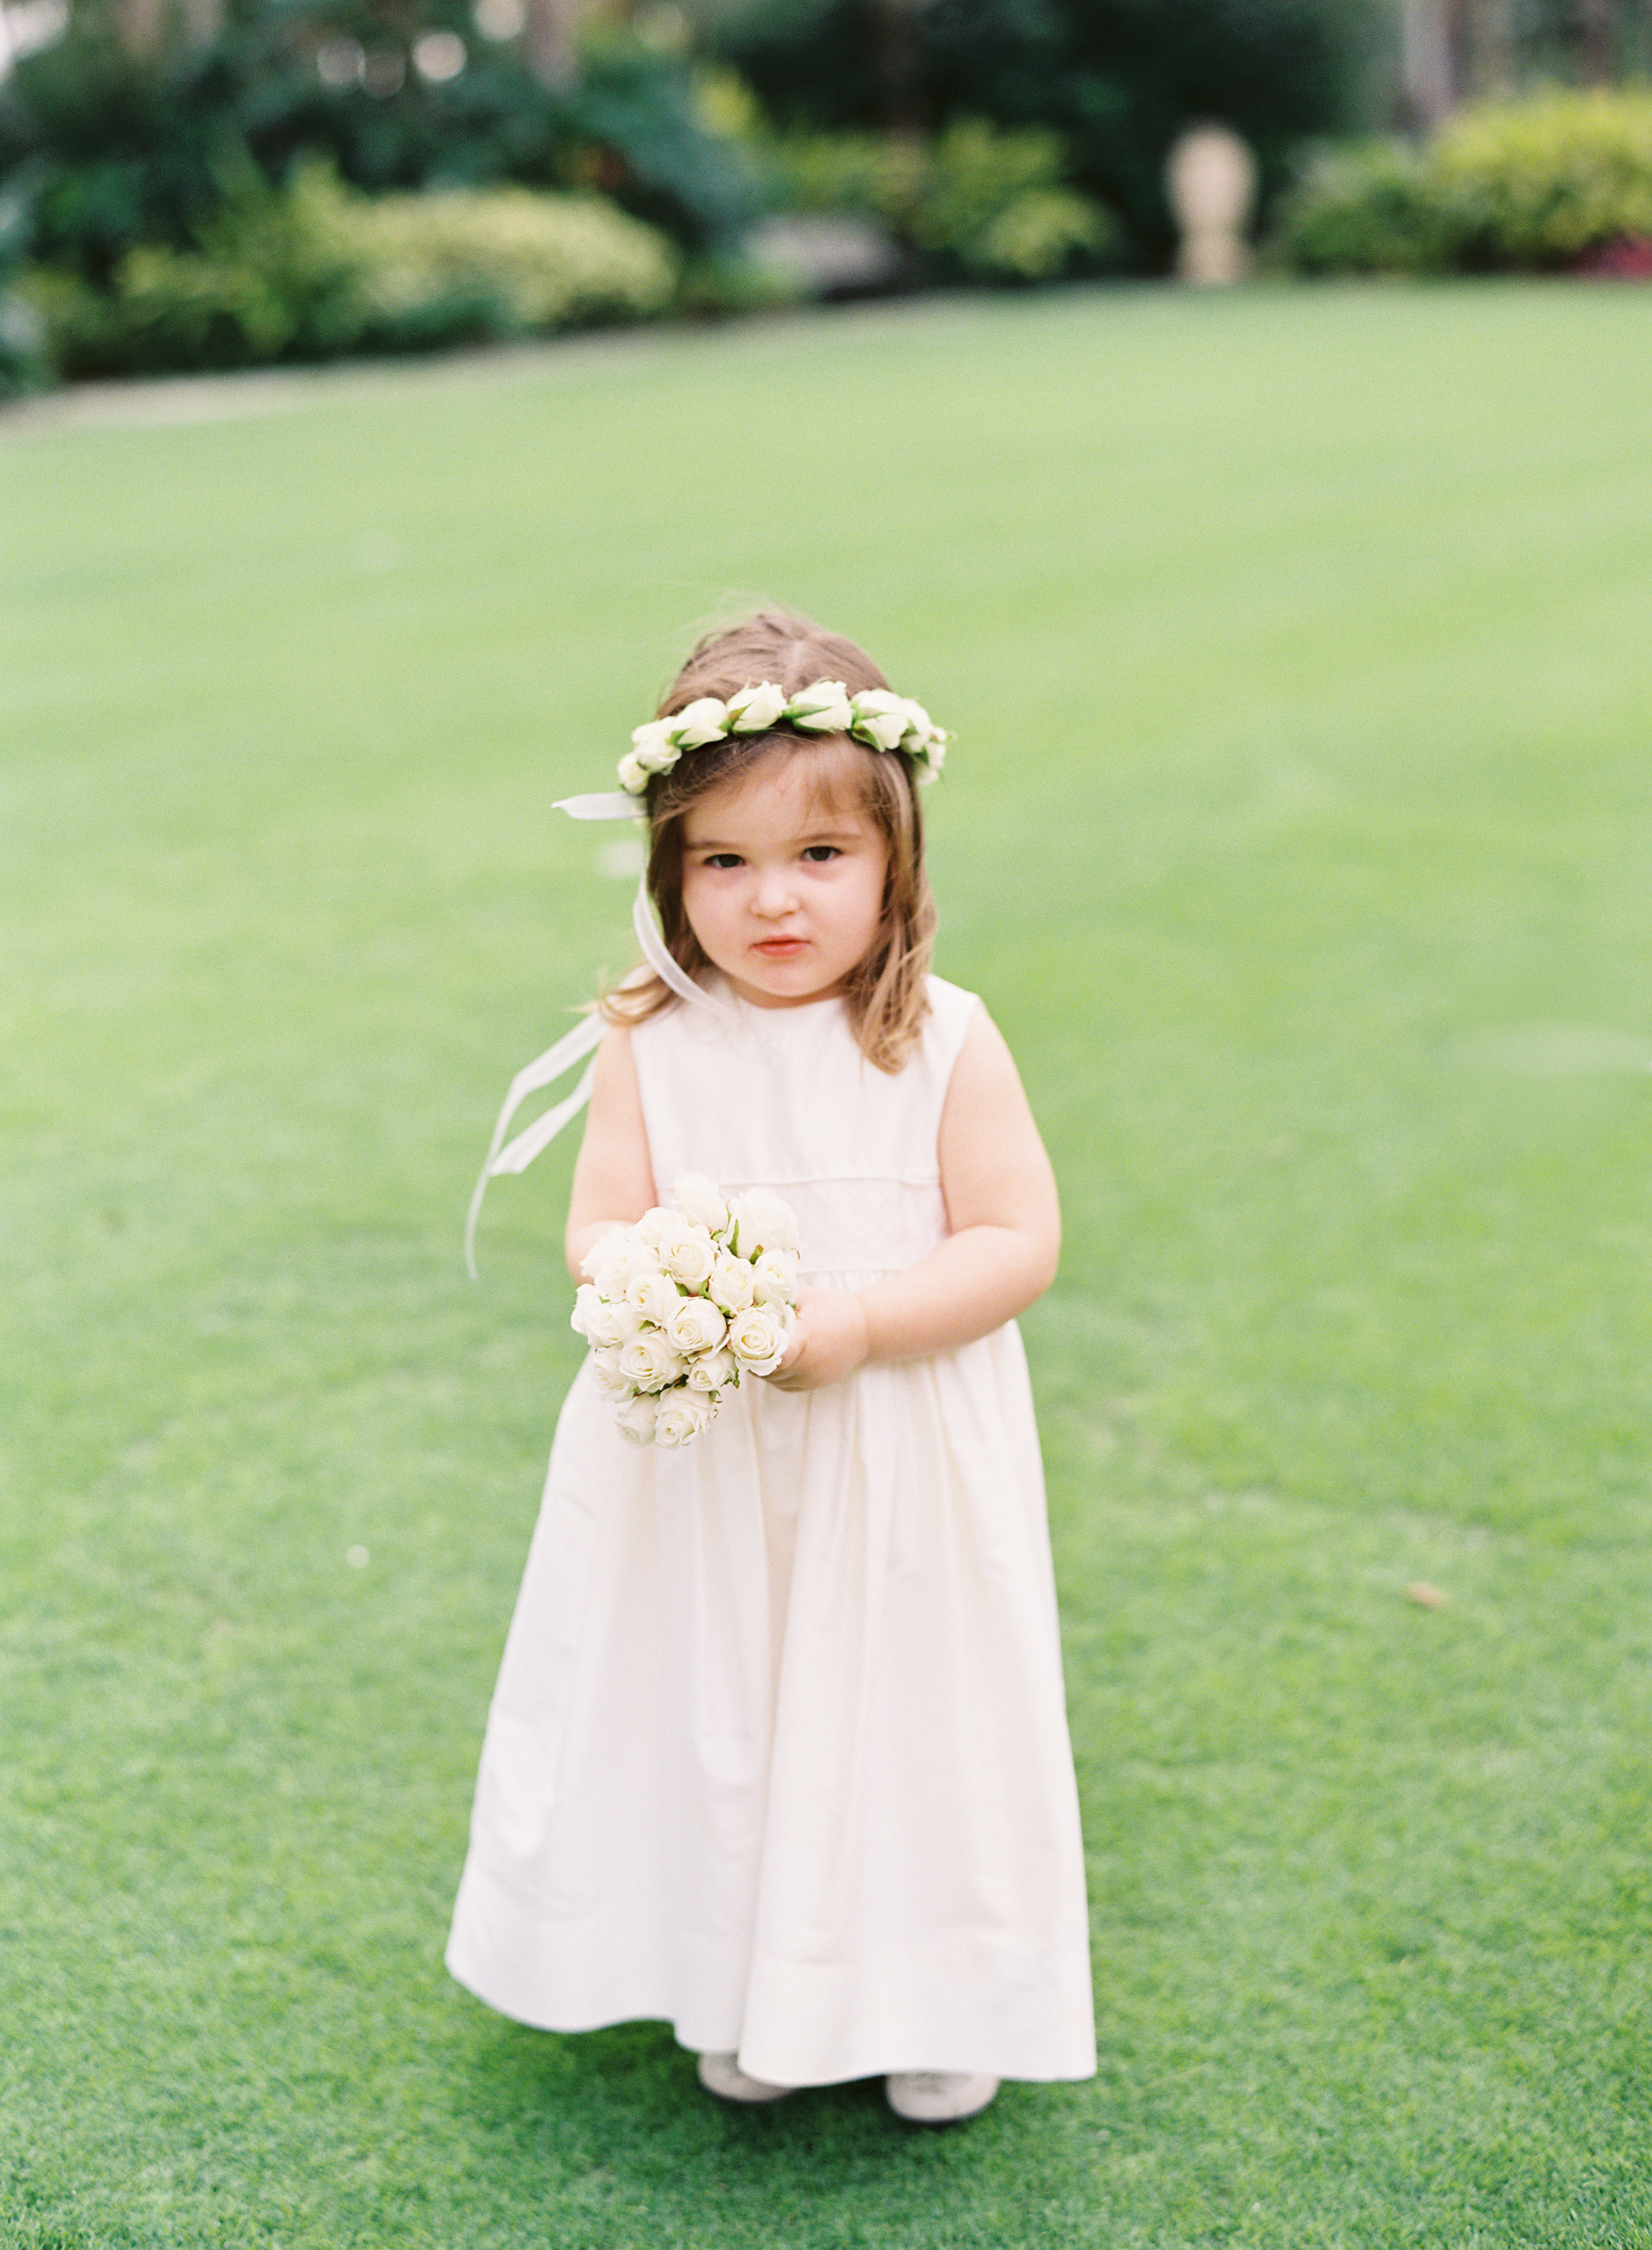 Real Weddings, Classic, Flower girl, Elegant, Florida, hair wreath